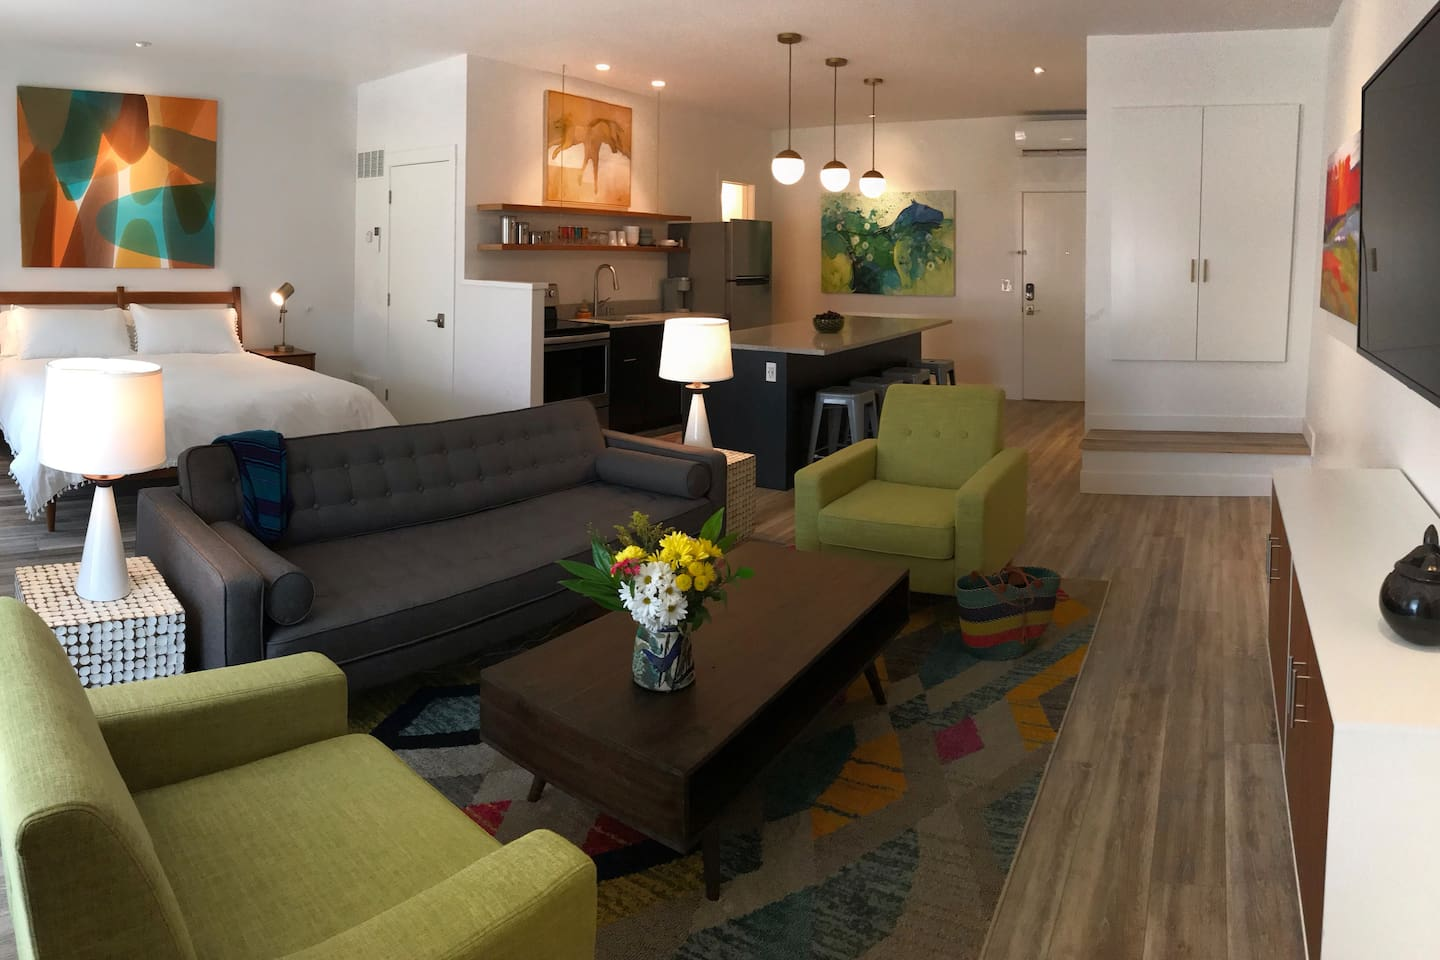 The Loft on Main is a new spacious studio apartment is filled with original art, comfortable furnishings, full kitchen and washer and dryer.